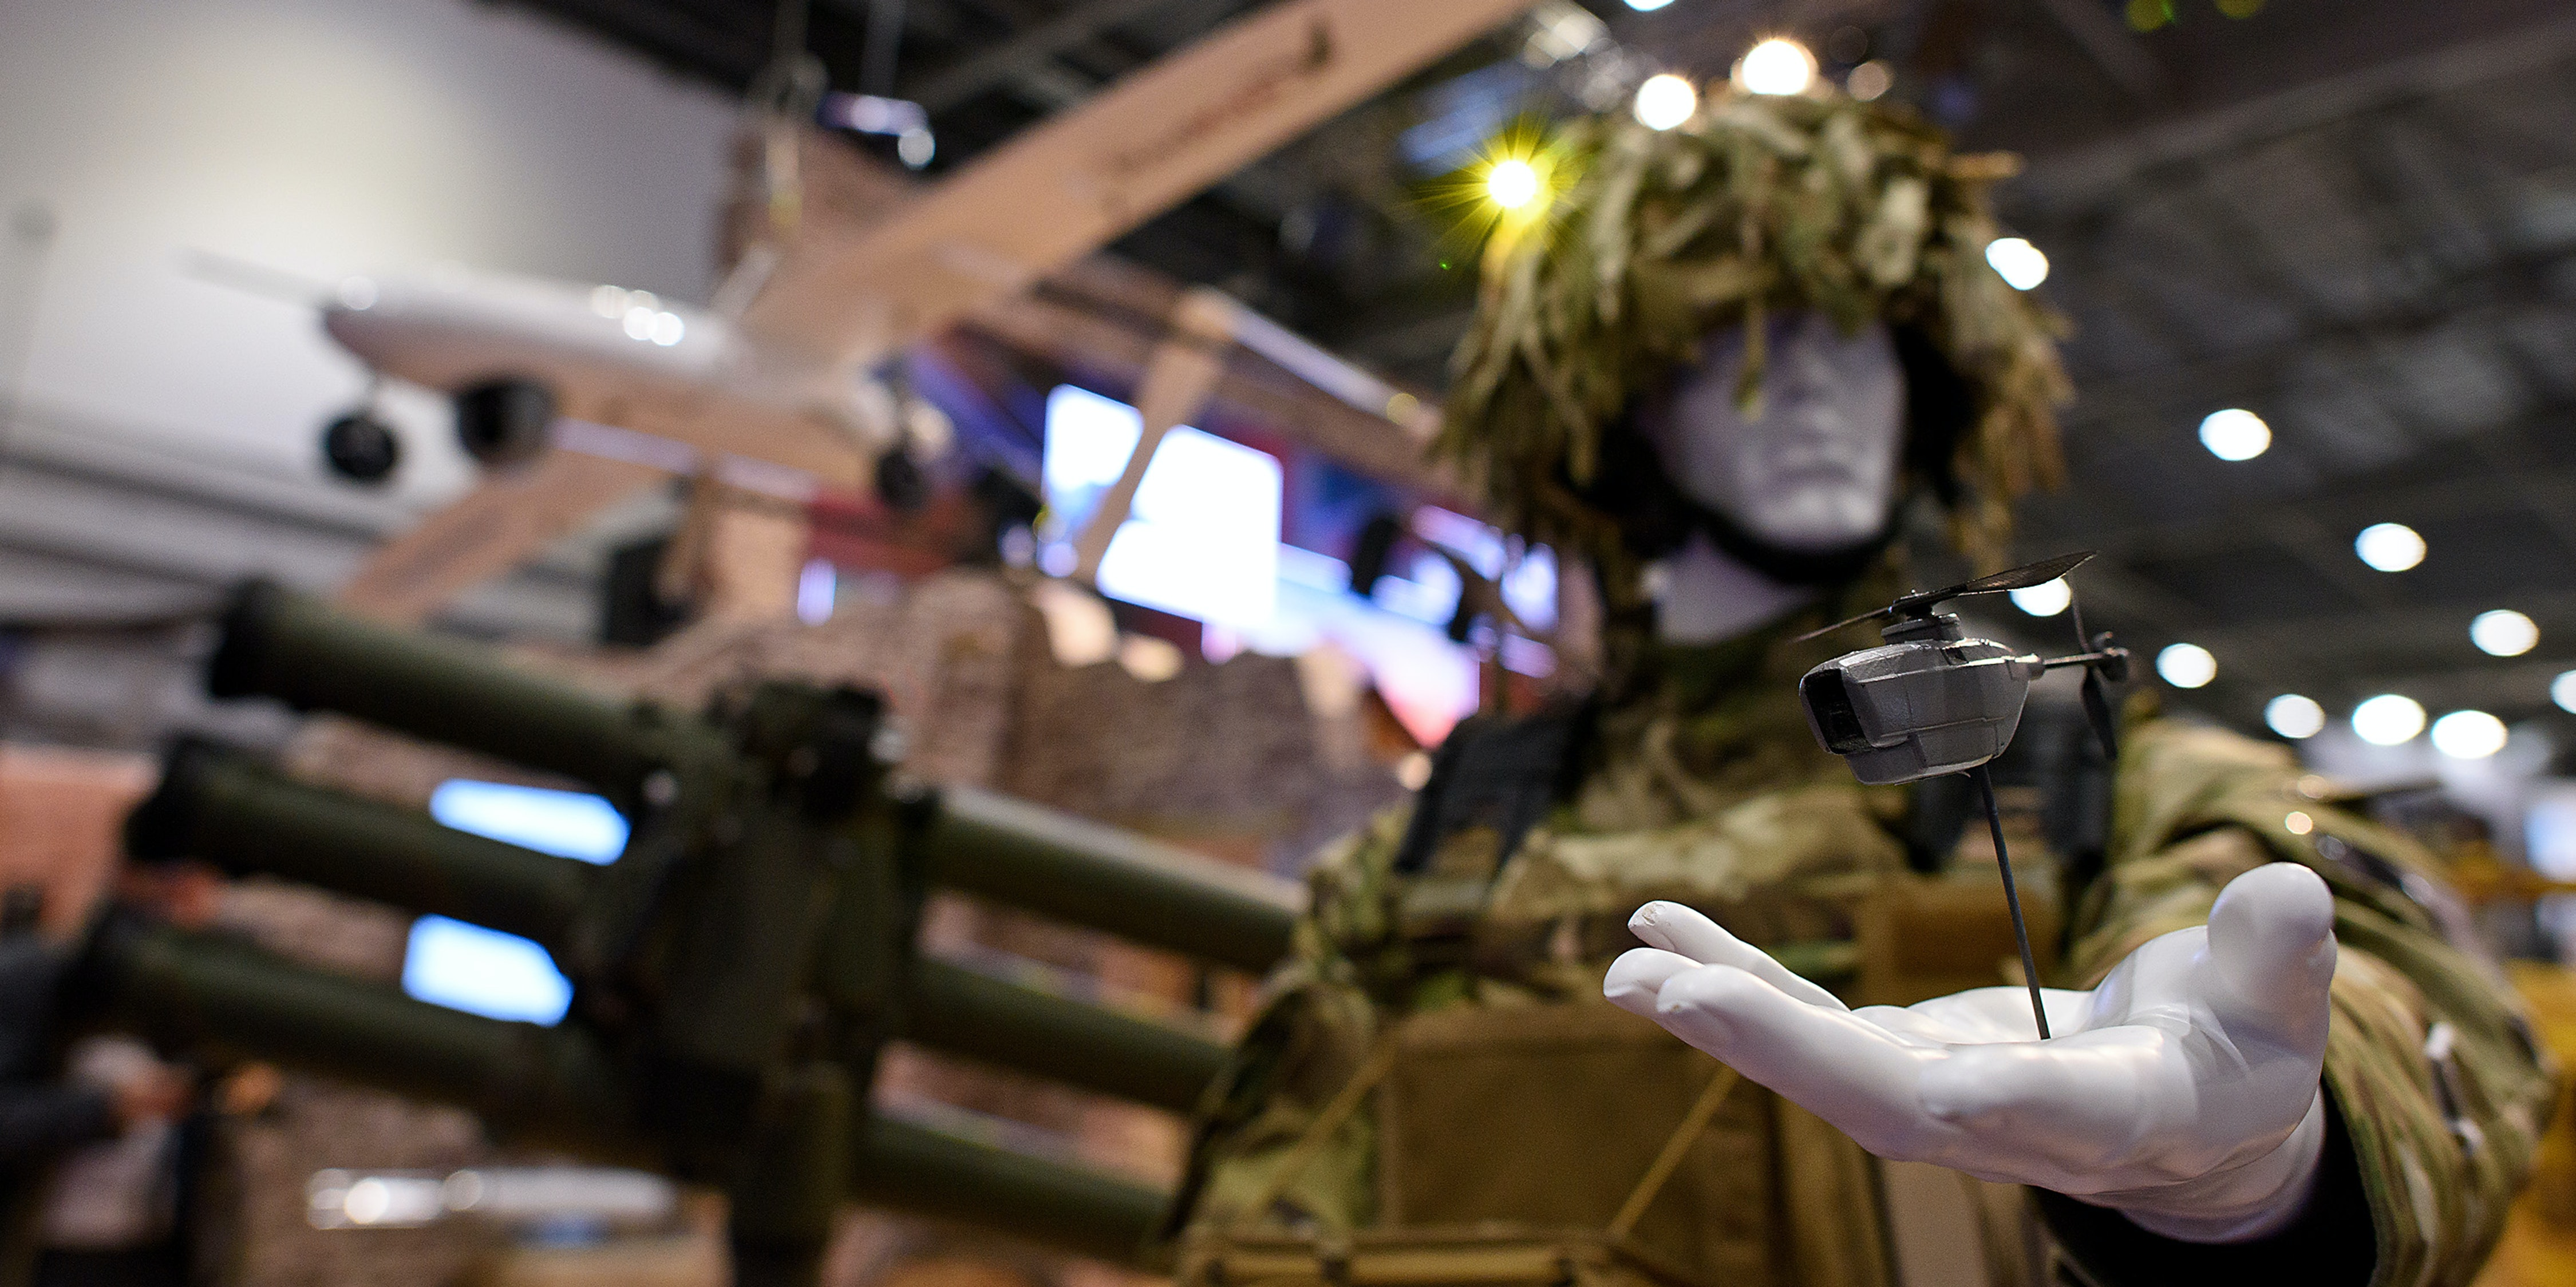 The Military's Micro-Drones Aren't Armed. For Now.